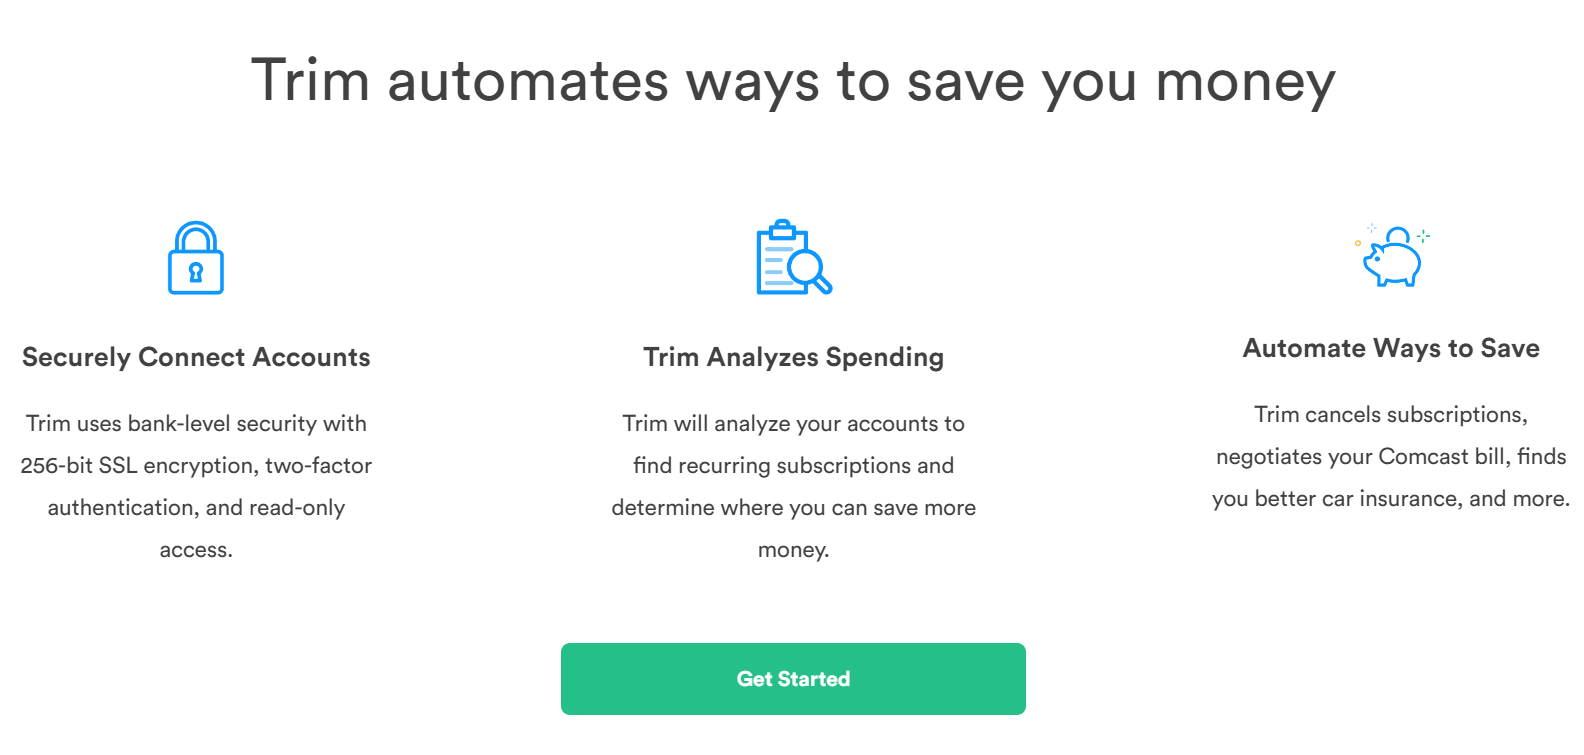 Budgeting tips - save money on unused subscriptions with Trim